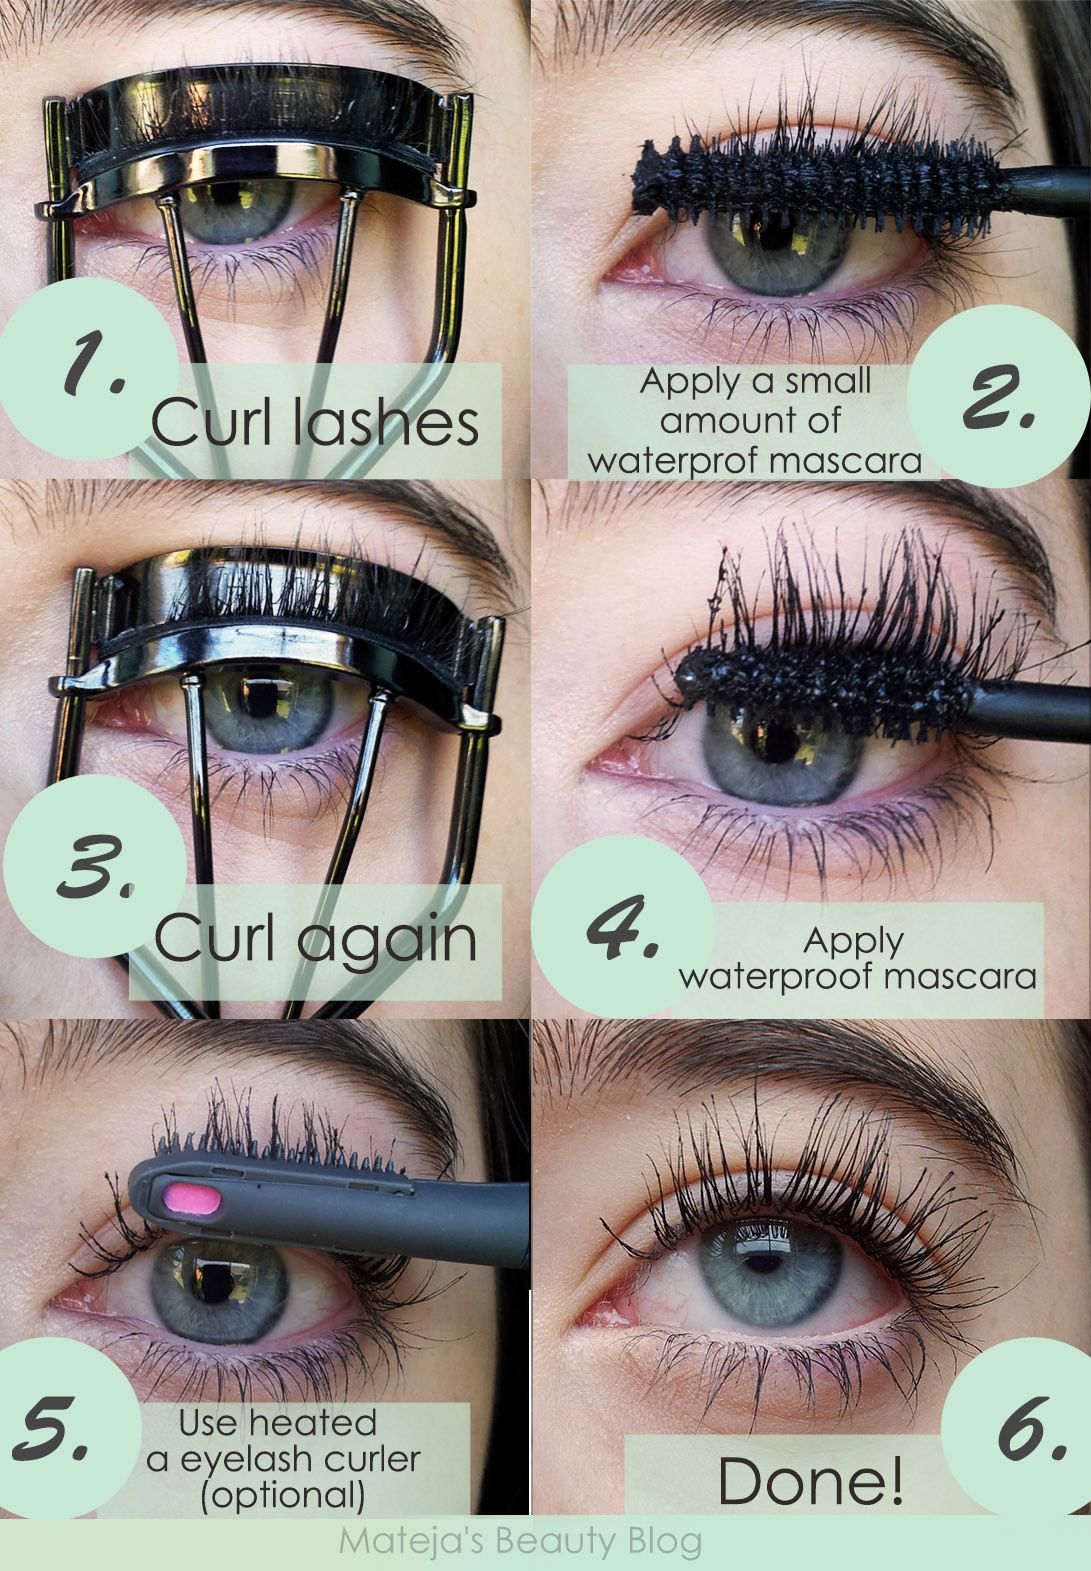 Matejas Beauty Blog How To Curl Stubborn And Difficult To Curl